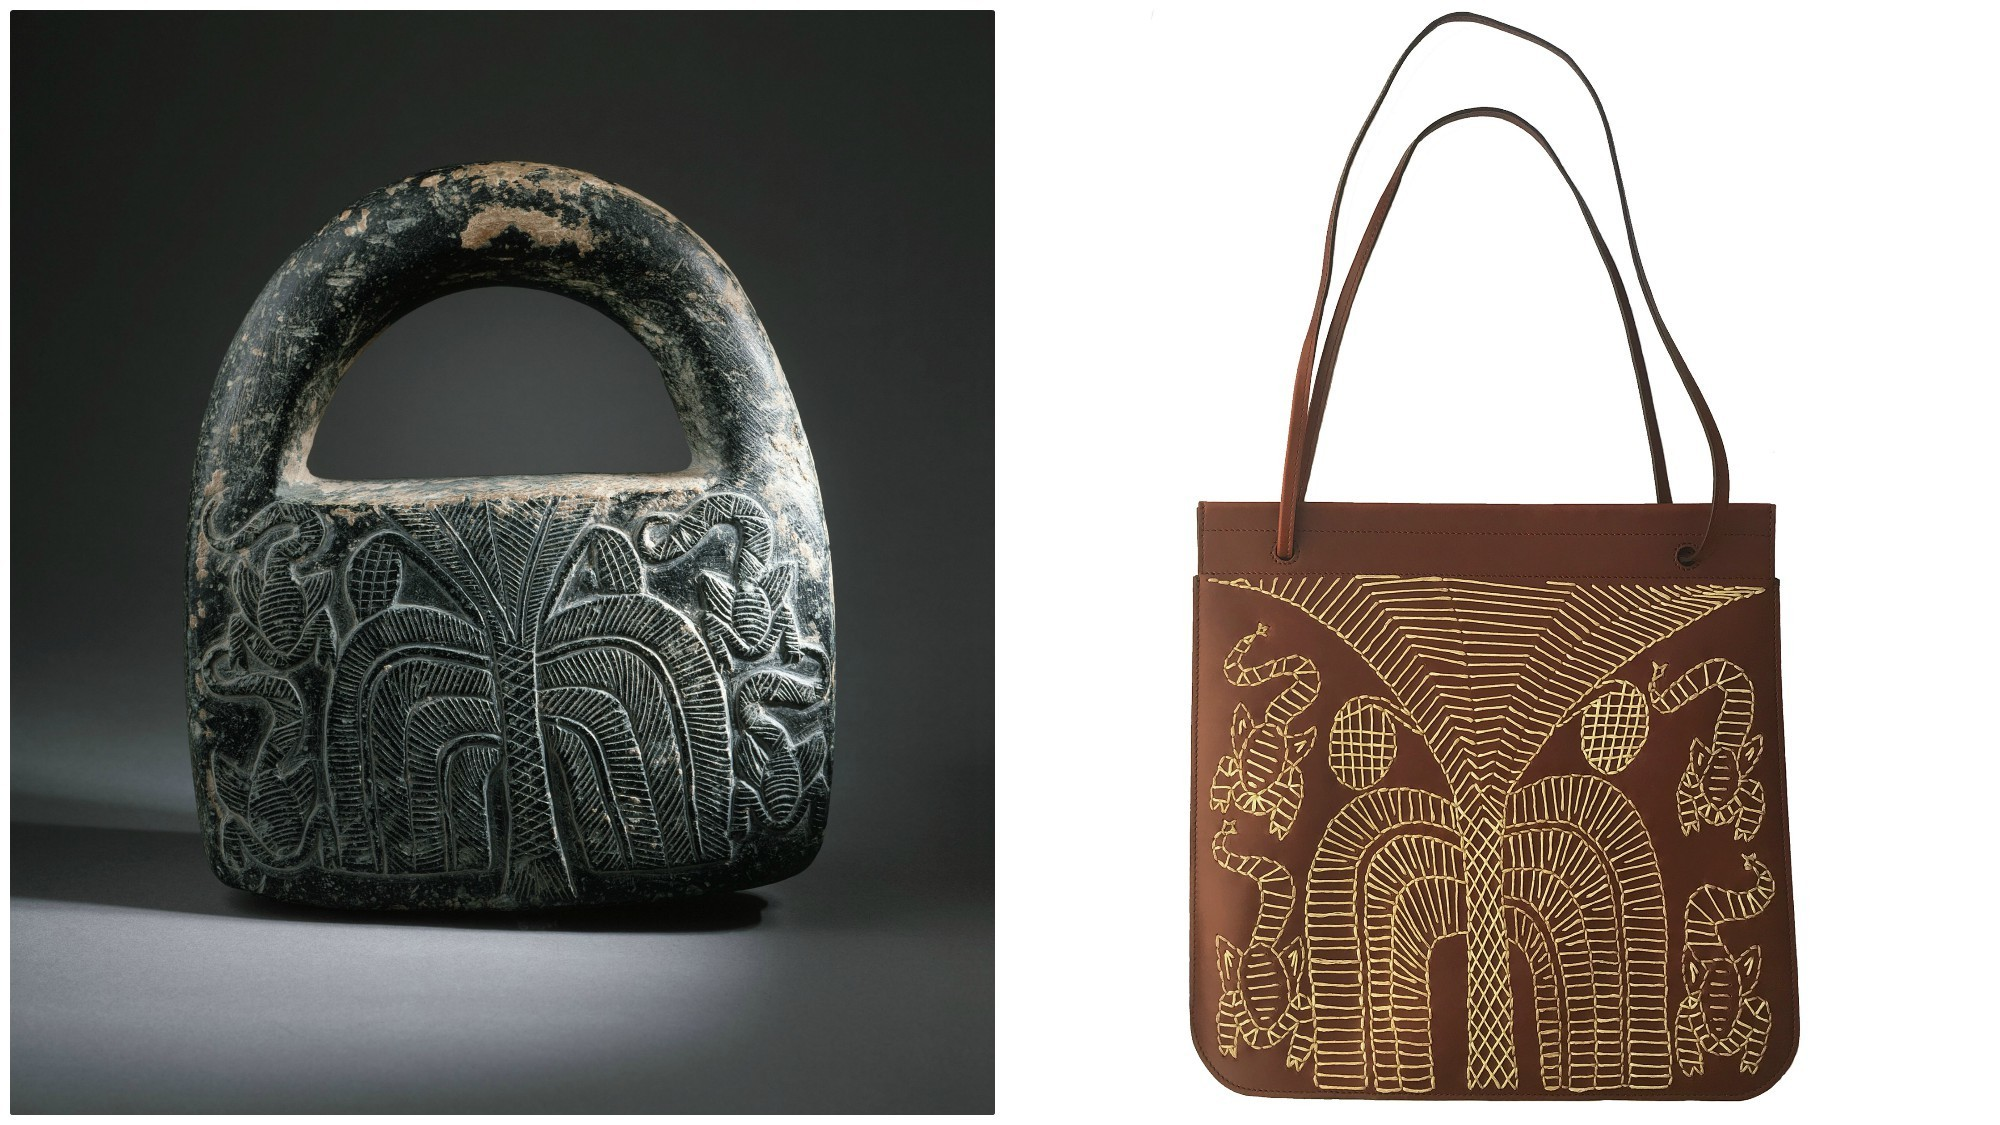 An ancient, handled weight from Afghanistan, left, was the inspiration for a shoulder bag, right, and two other items designed by Kendall Conrad for the latest Wear LACMA collection.